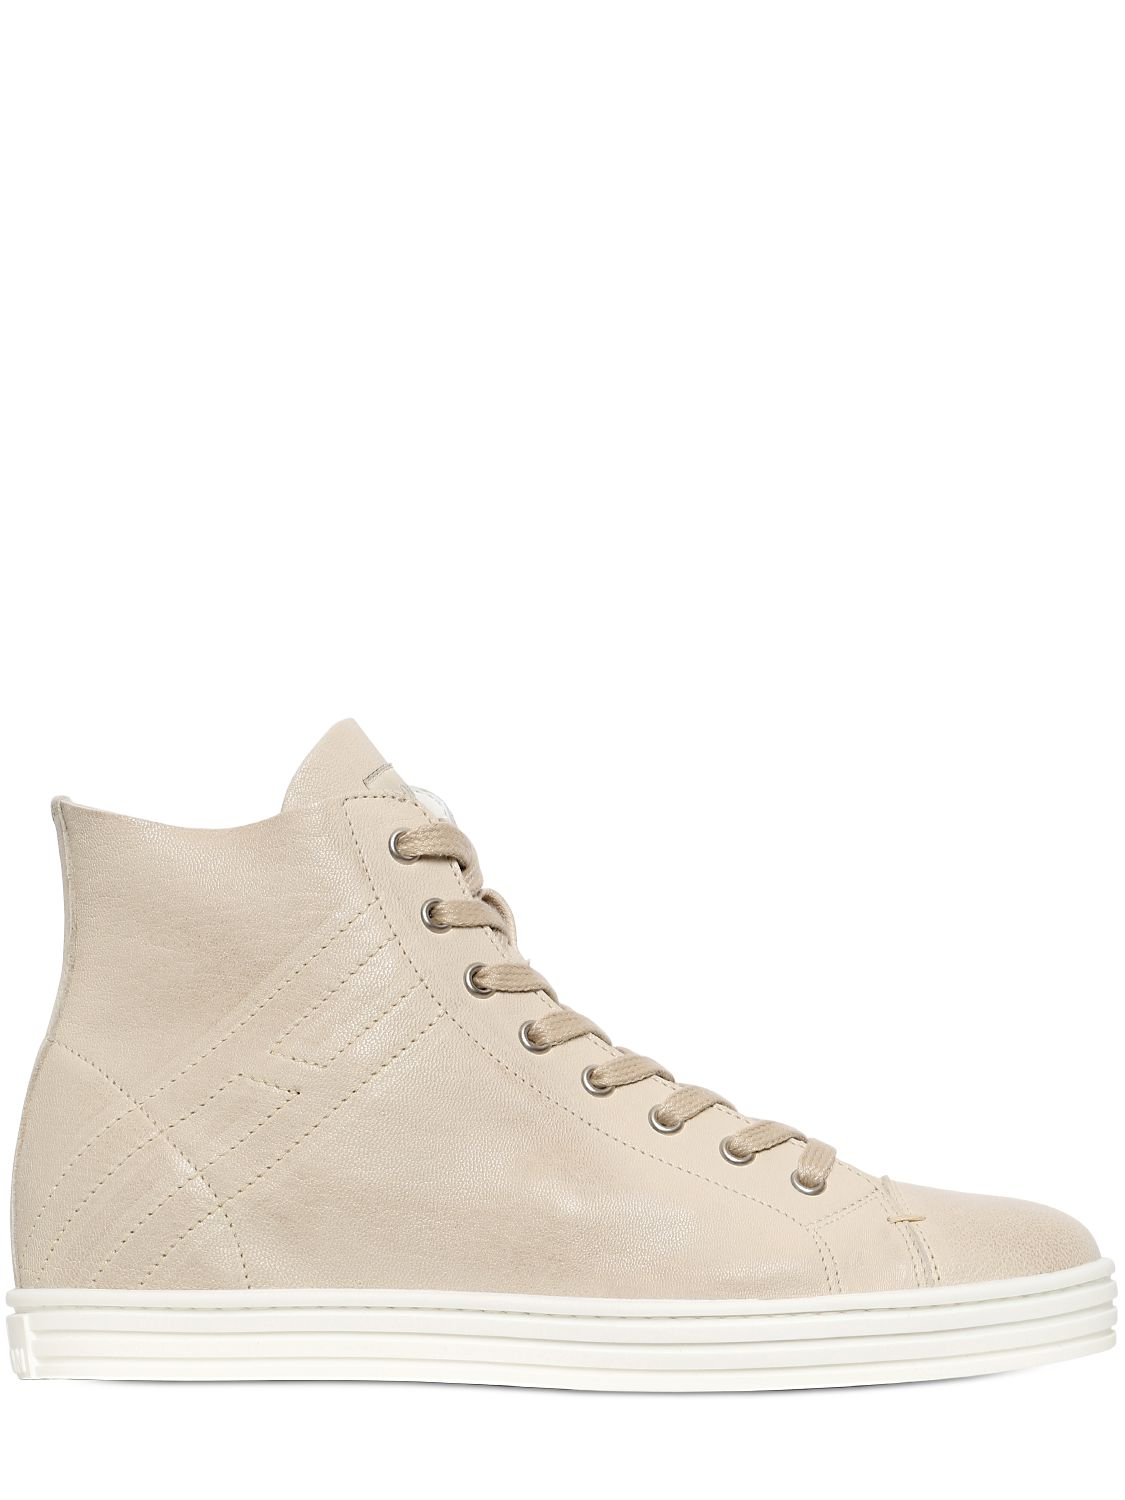 Hogan Rebel Hogan Rebel Beige Labestiacarenne It